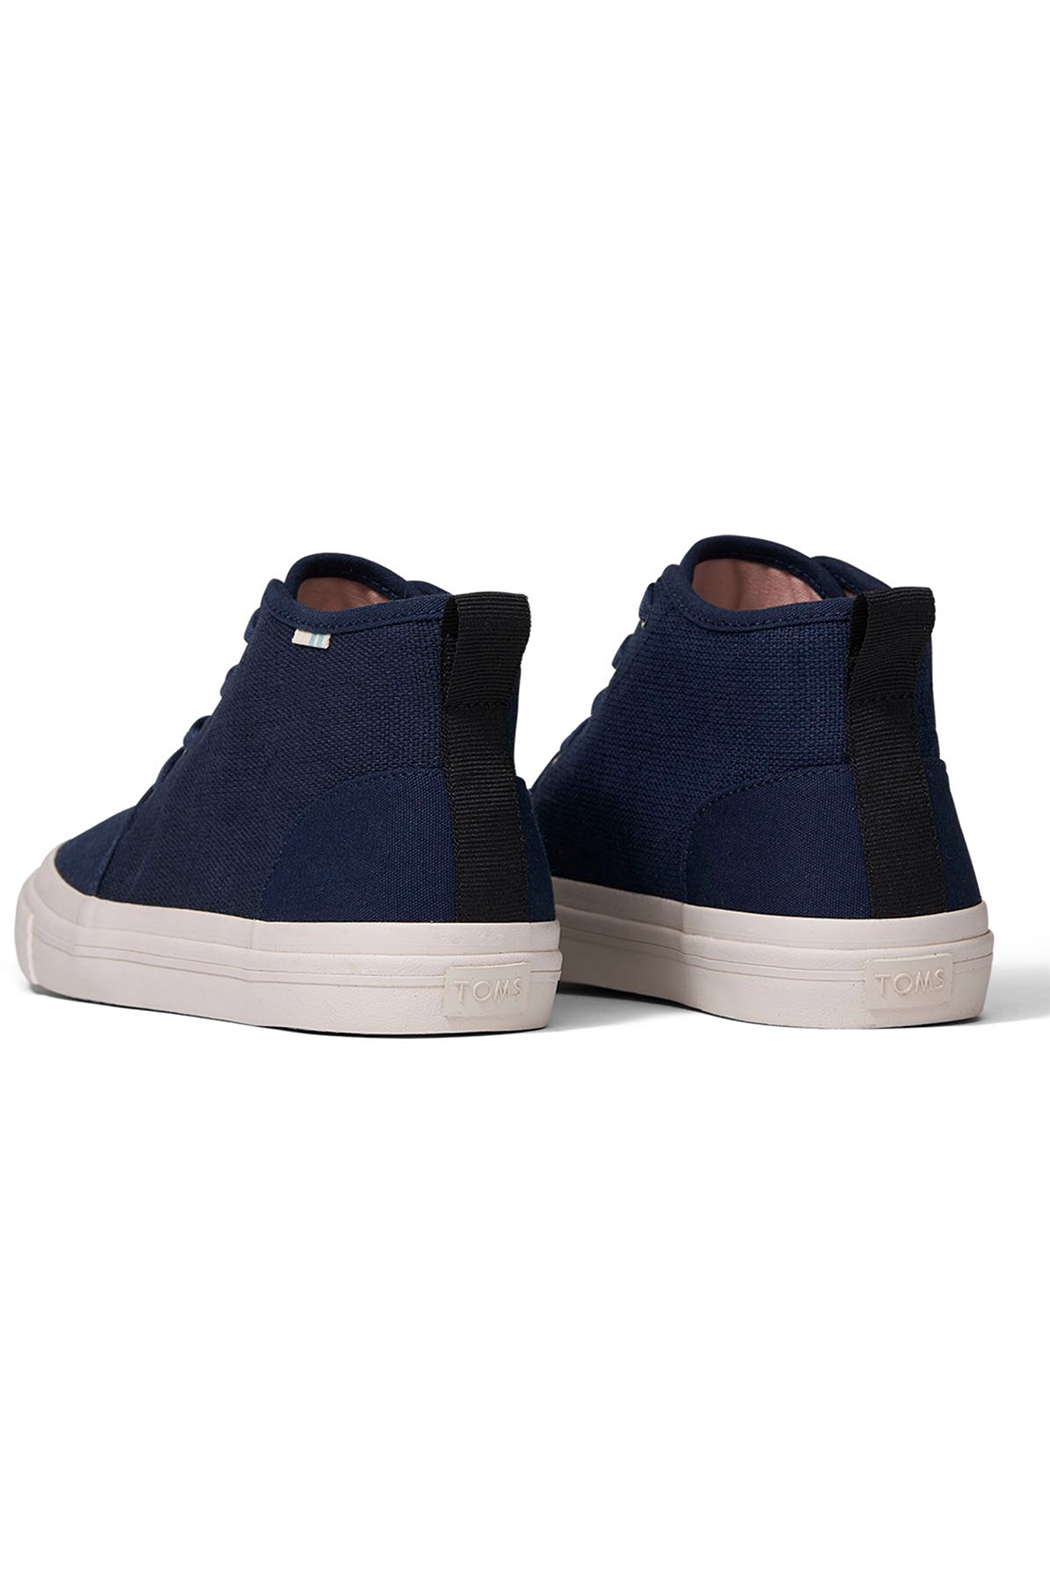 TOMS Youth Carlo Canvas Mid Sneakers - Side Cropped Image